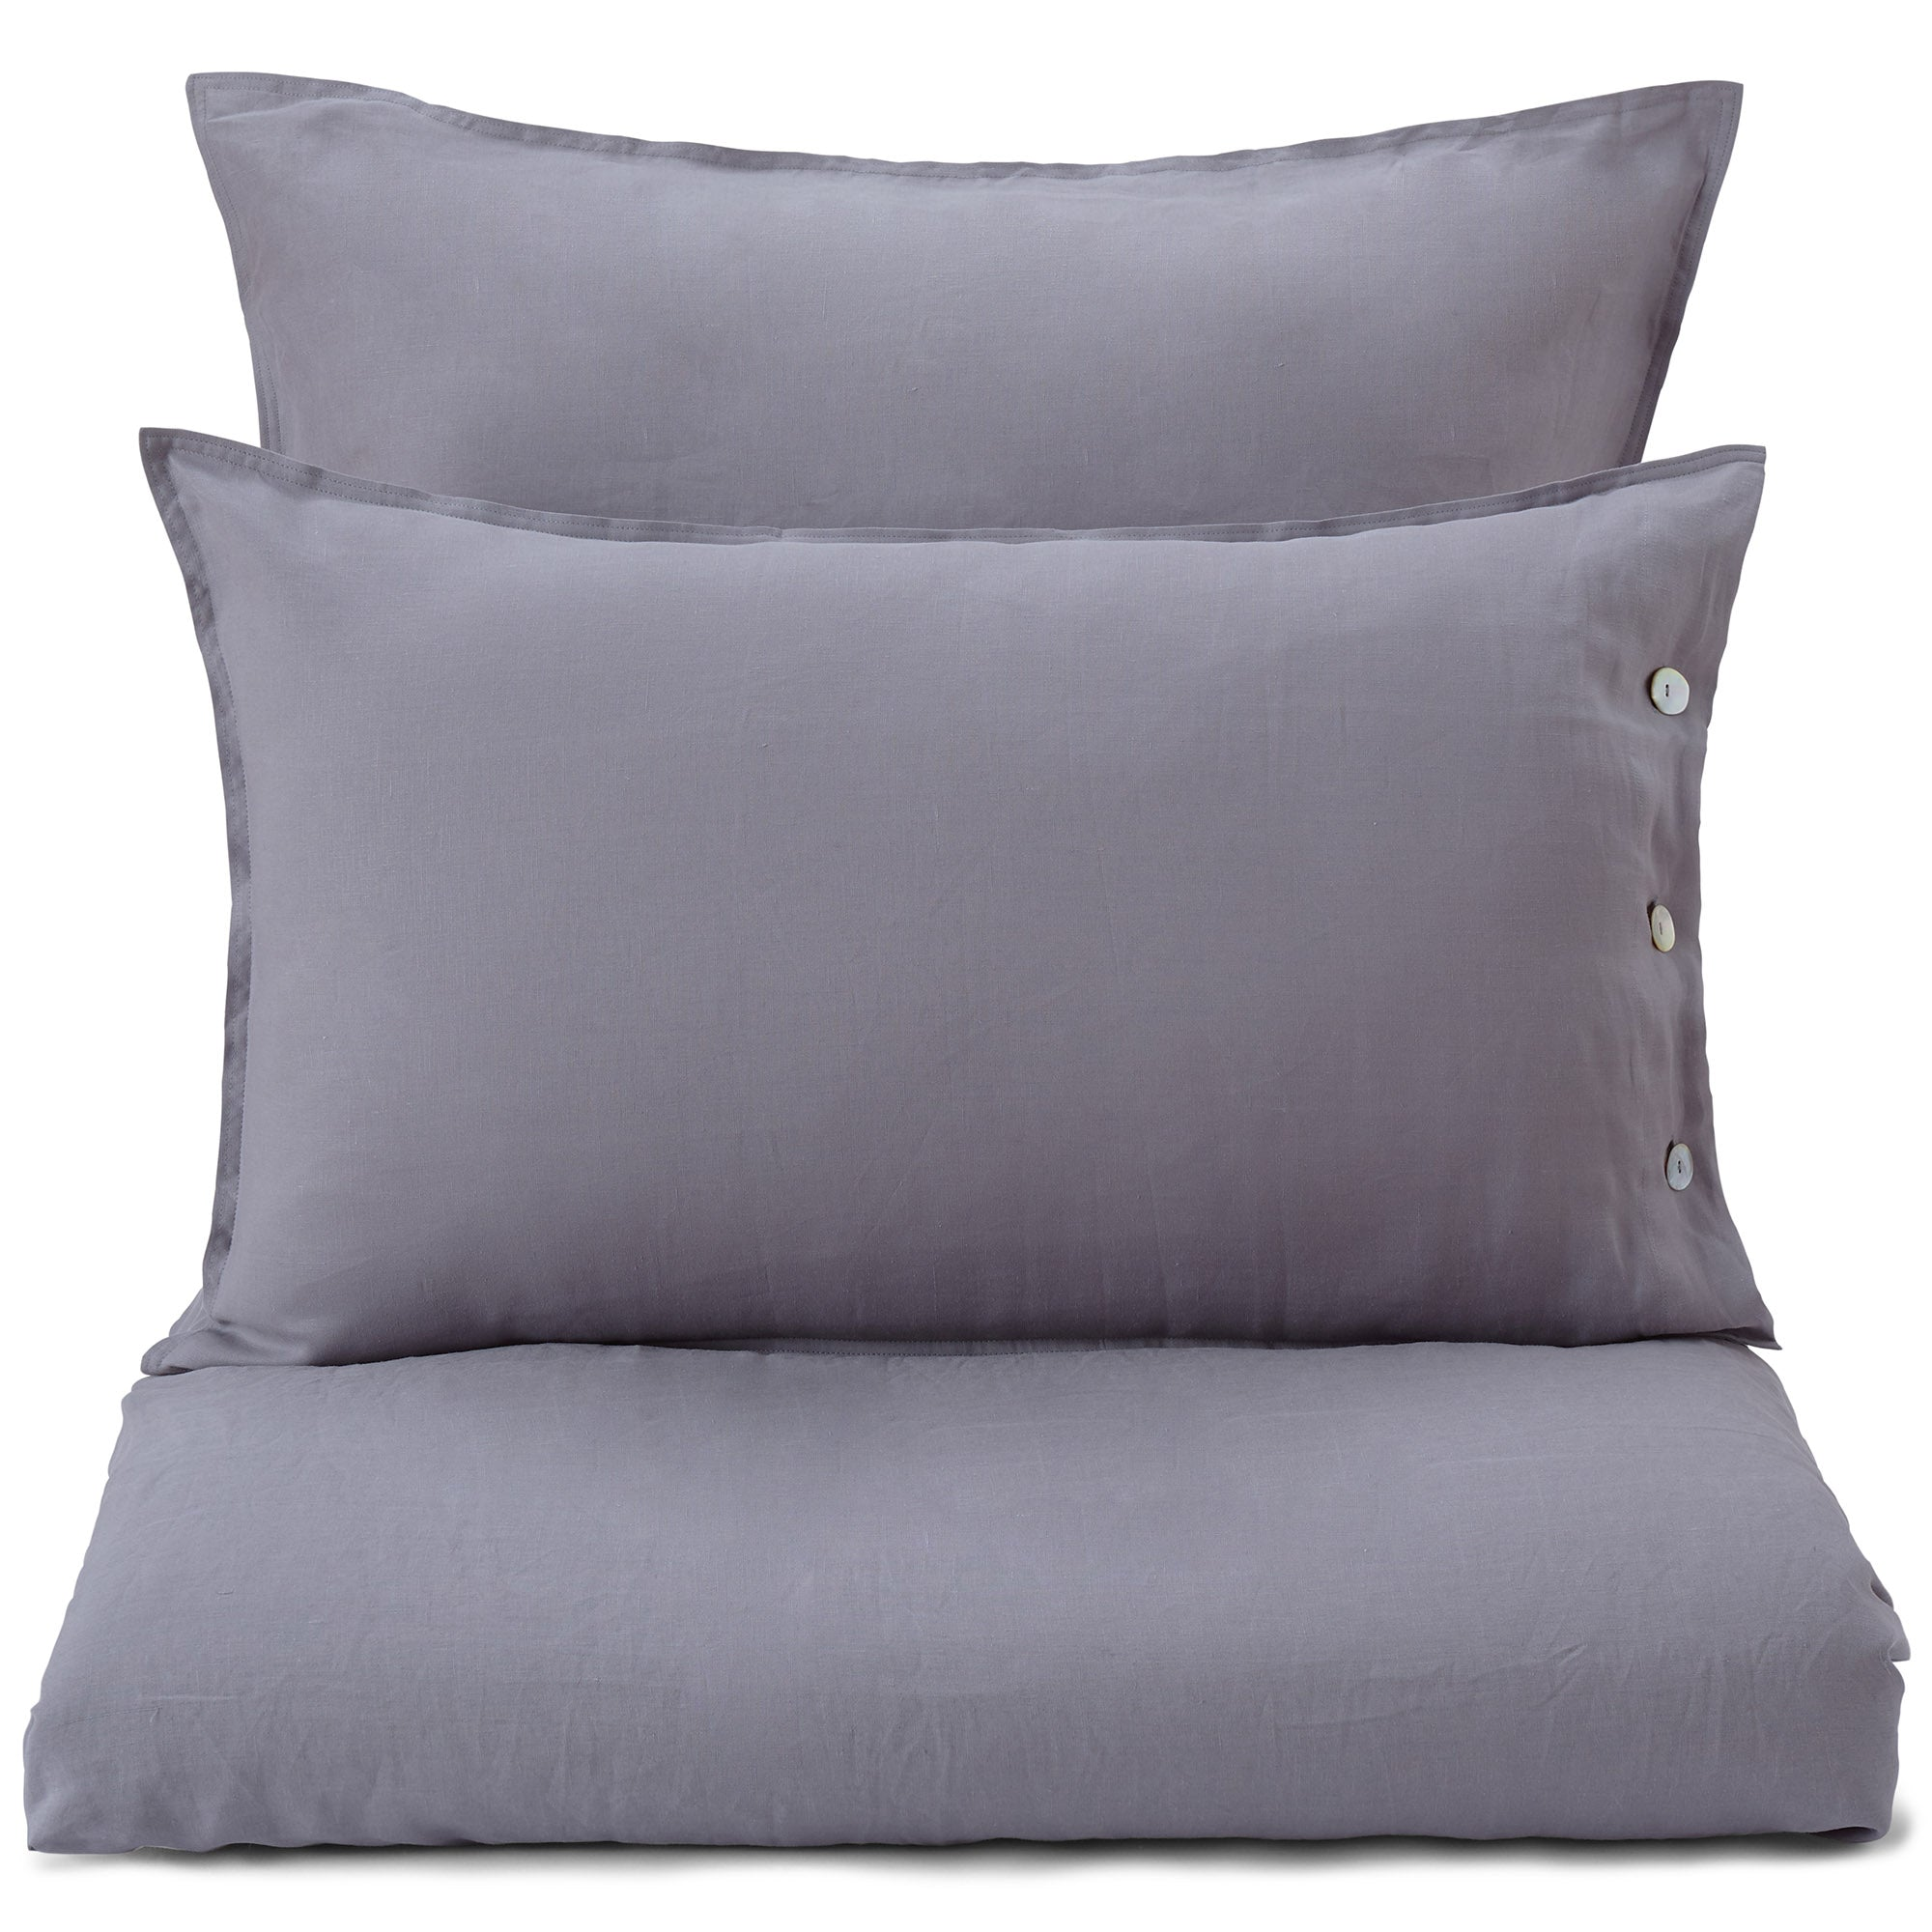 Bellvis Pillowcase [Charcoal]